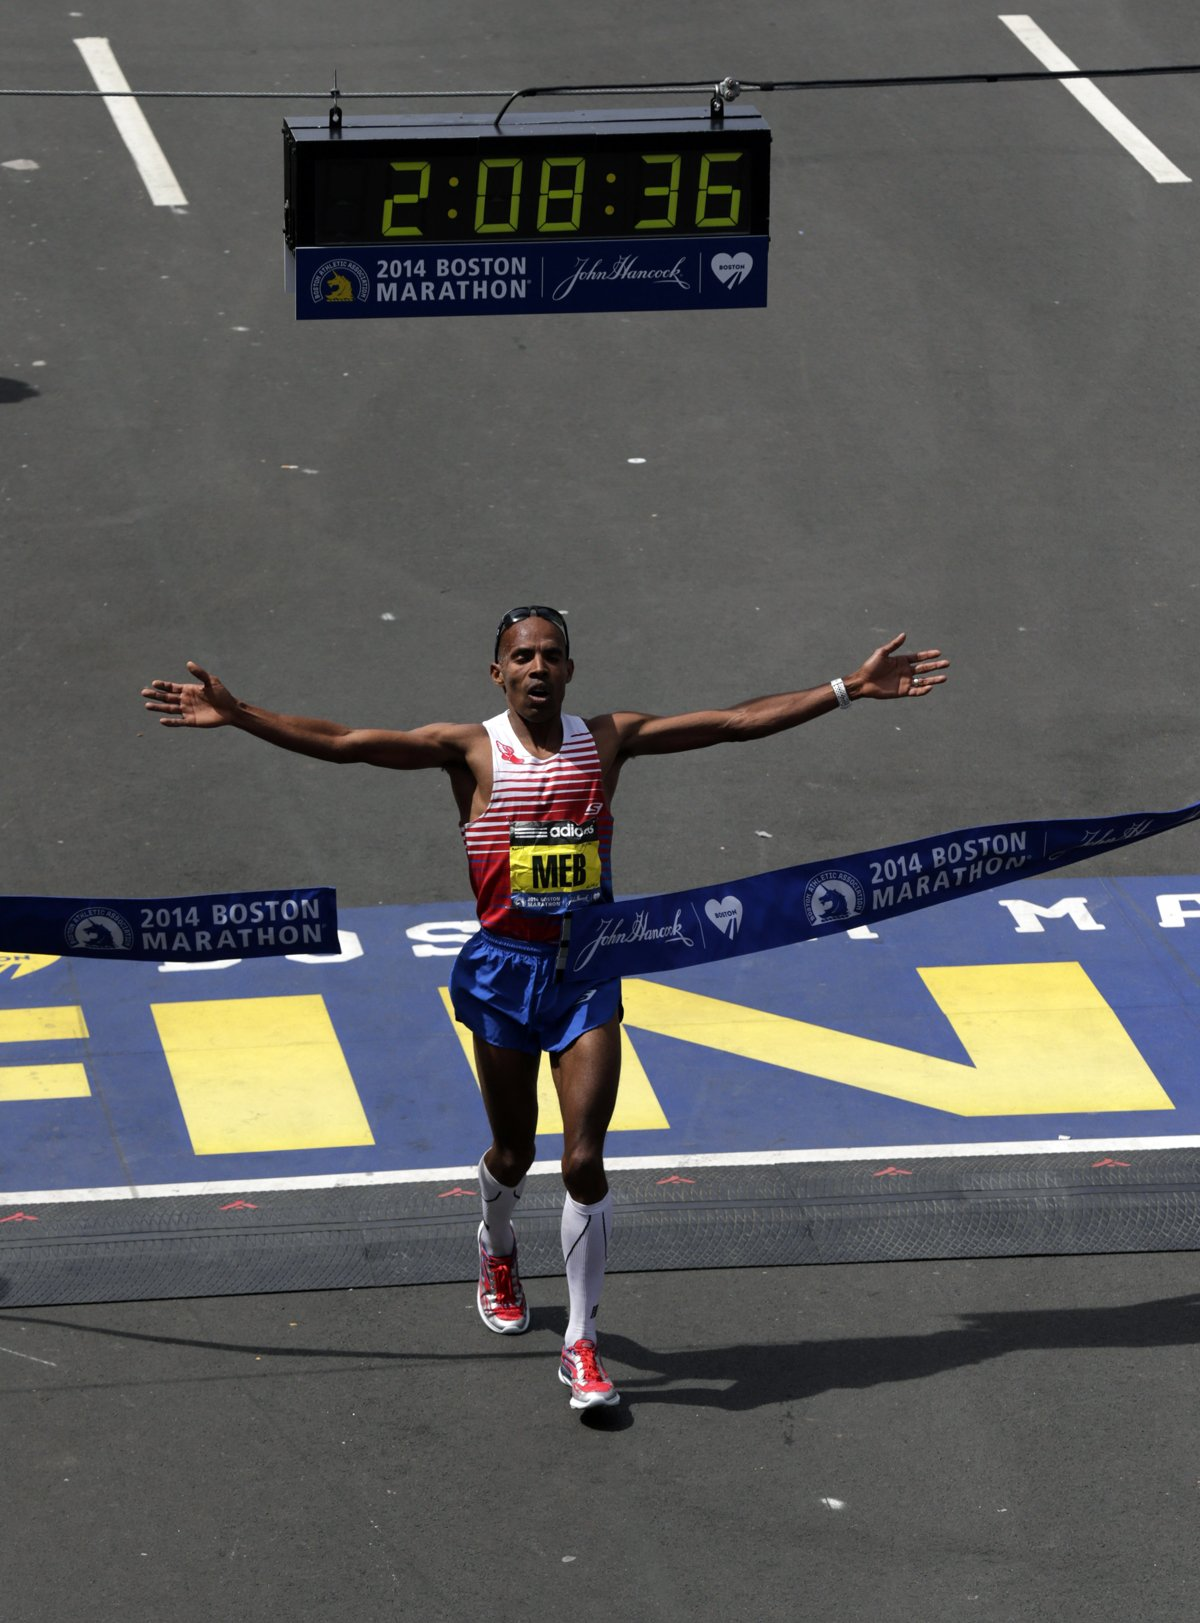 Meb Keflezighi crossing the finish line